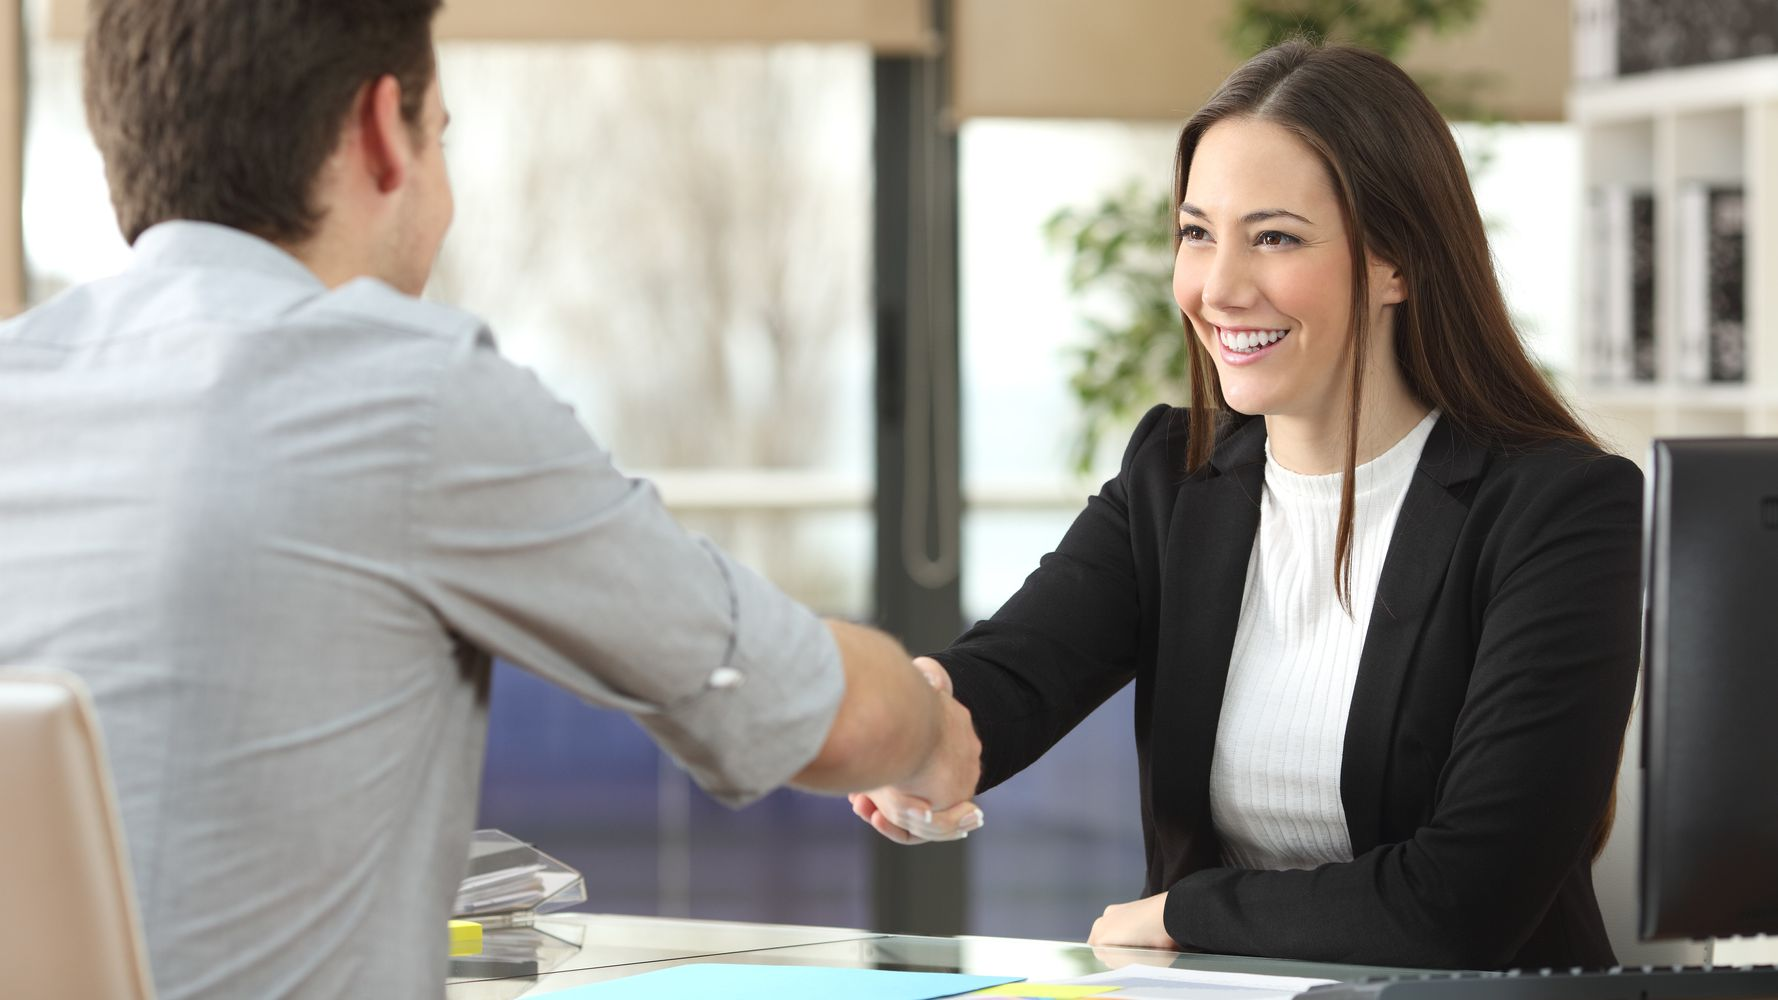 Tips to Hire the Right People